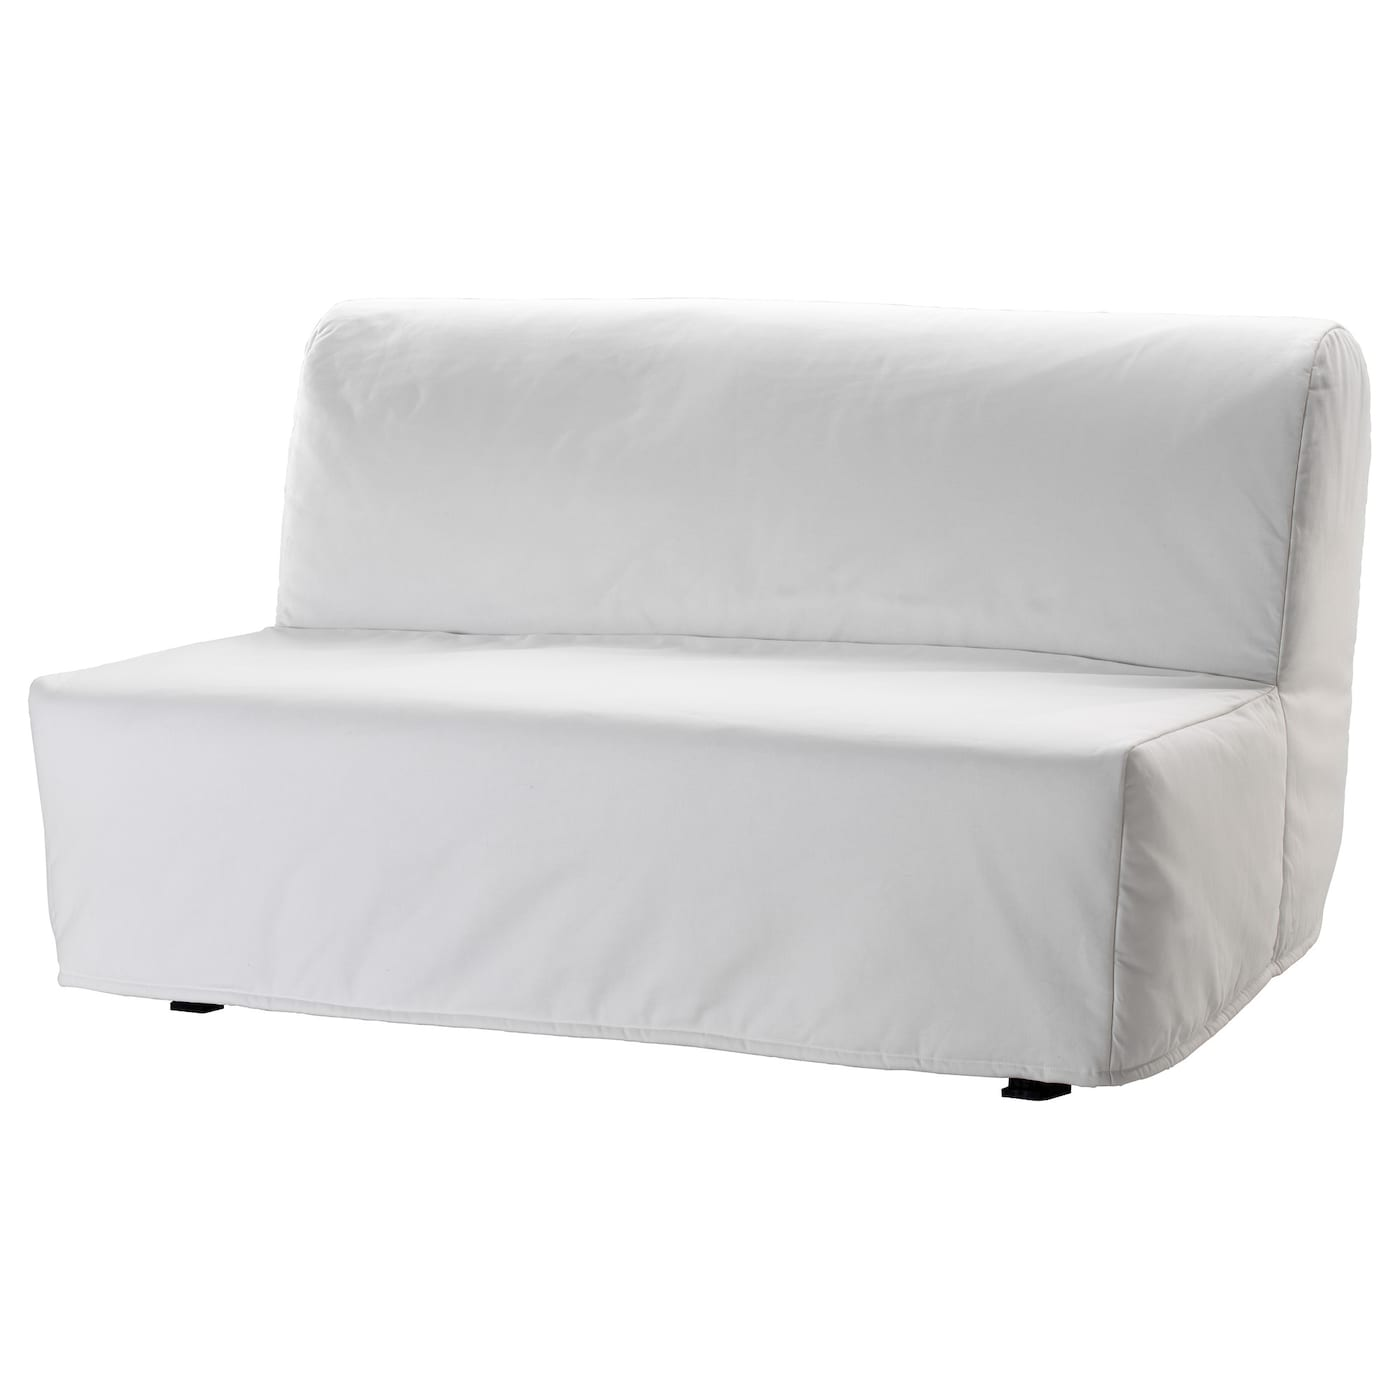 Lycksele Murbo Two Seat Sofa Bed Ransta White Ikea # Notice Montage Ikea